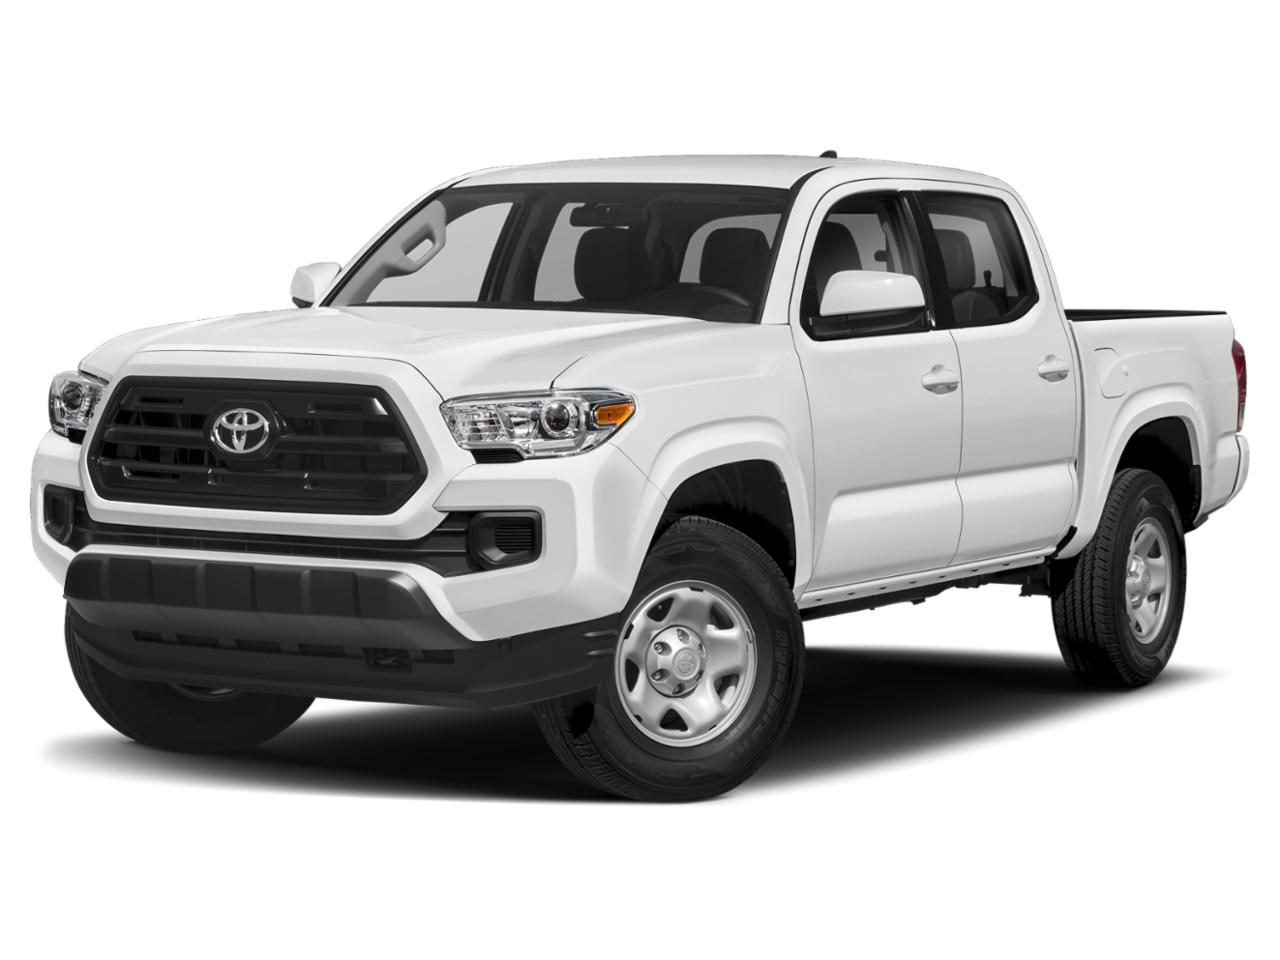 2018 Toyota Tacoma Vehicle Photo in BEND, OR 97701-5133